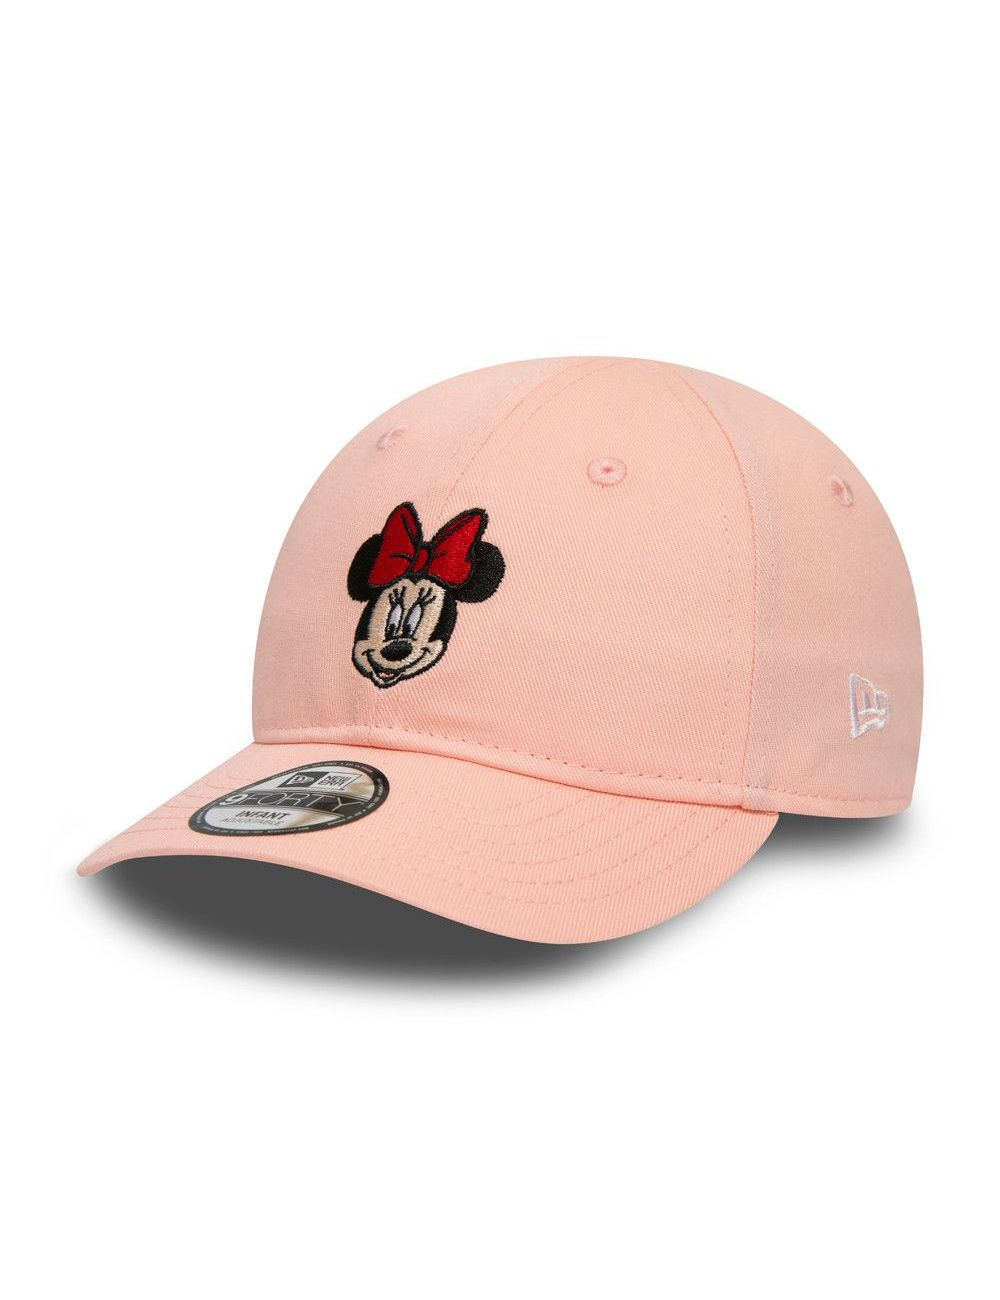 Casquette enfant/child 9FORTY Disney Mickey